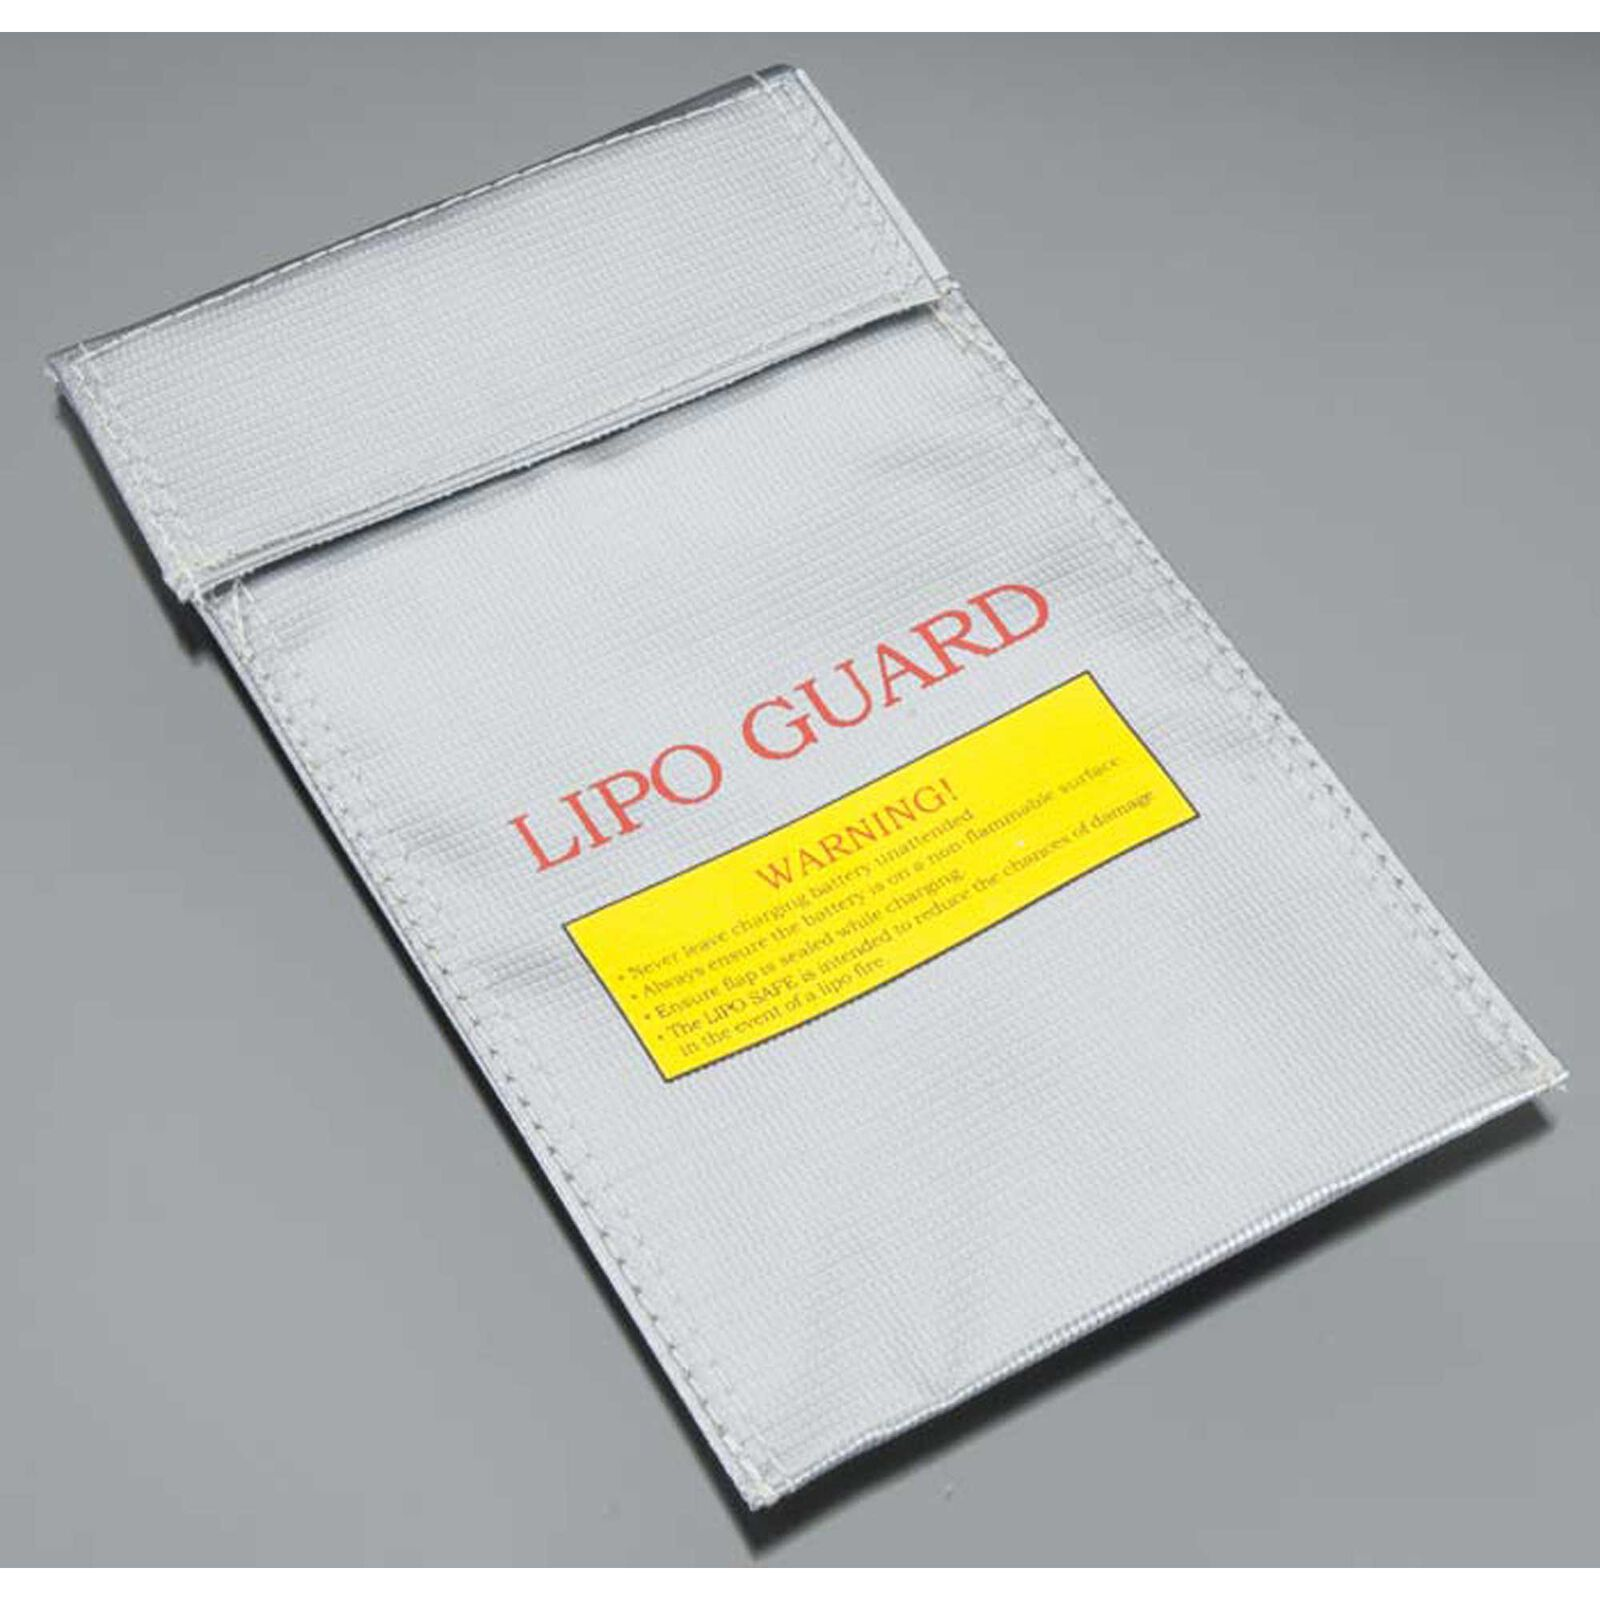 LiPo Guard Safety Battery Bag for Charging Storgage